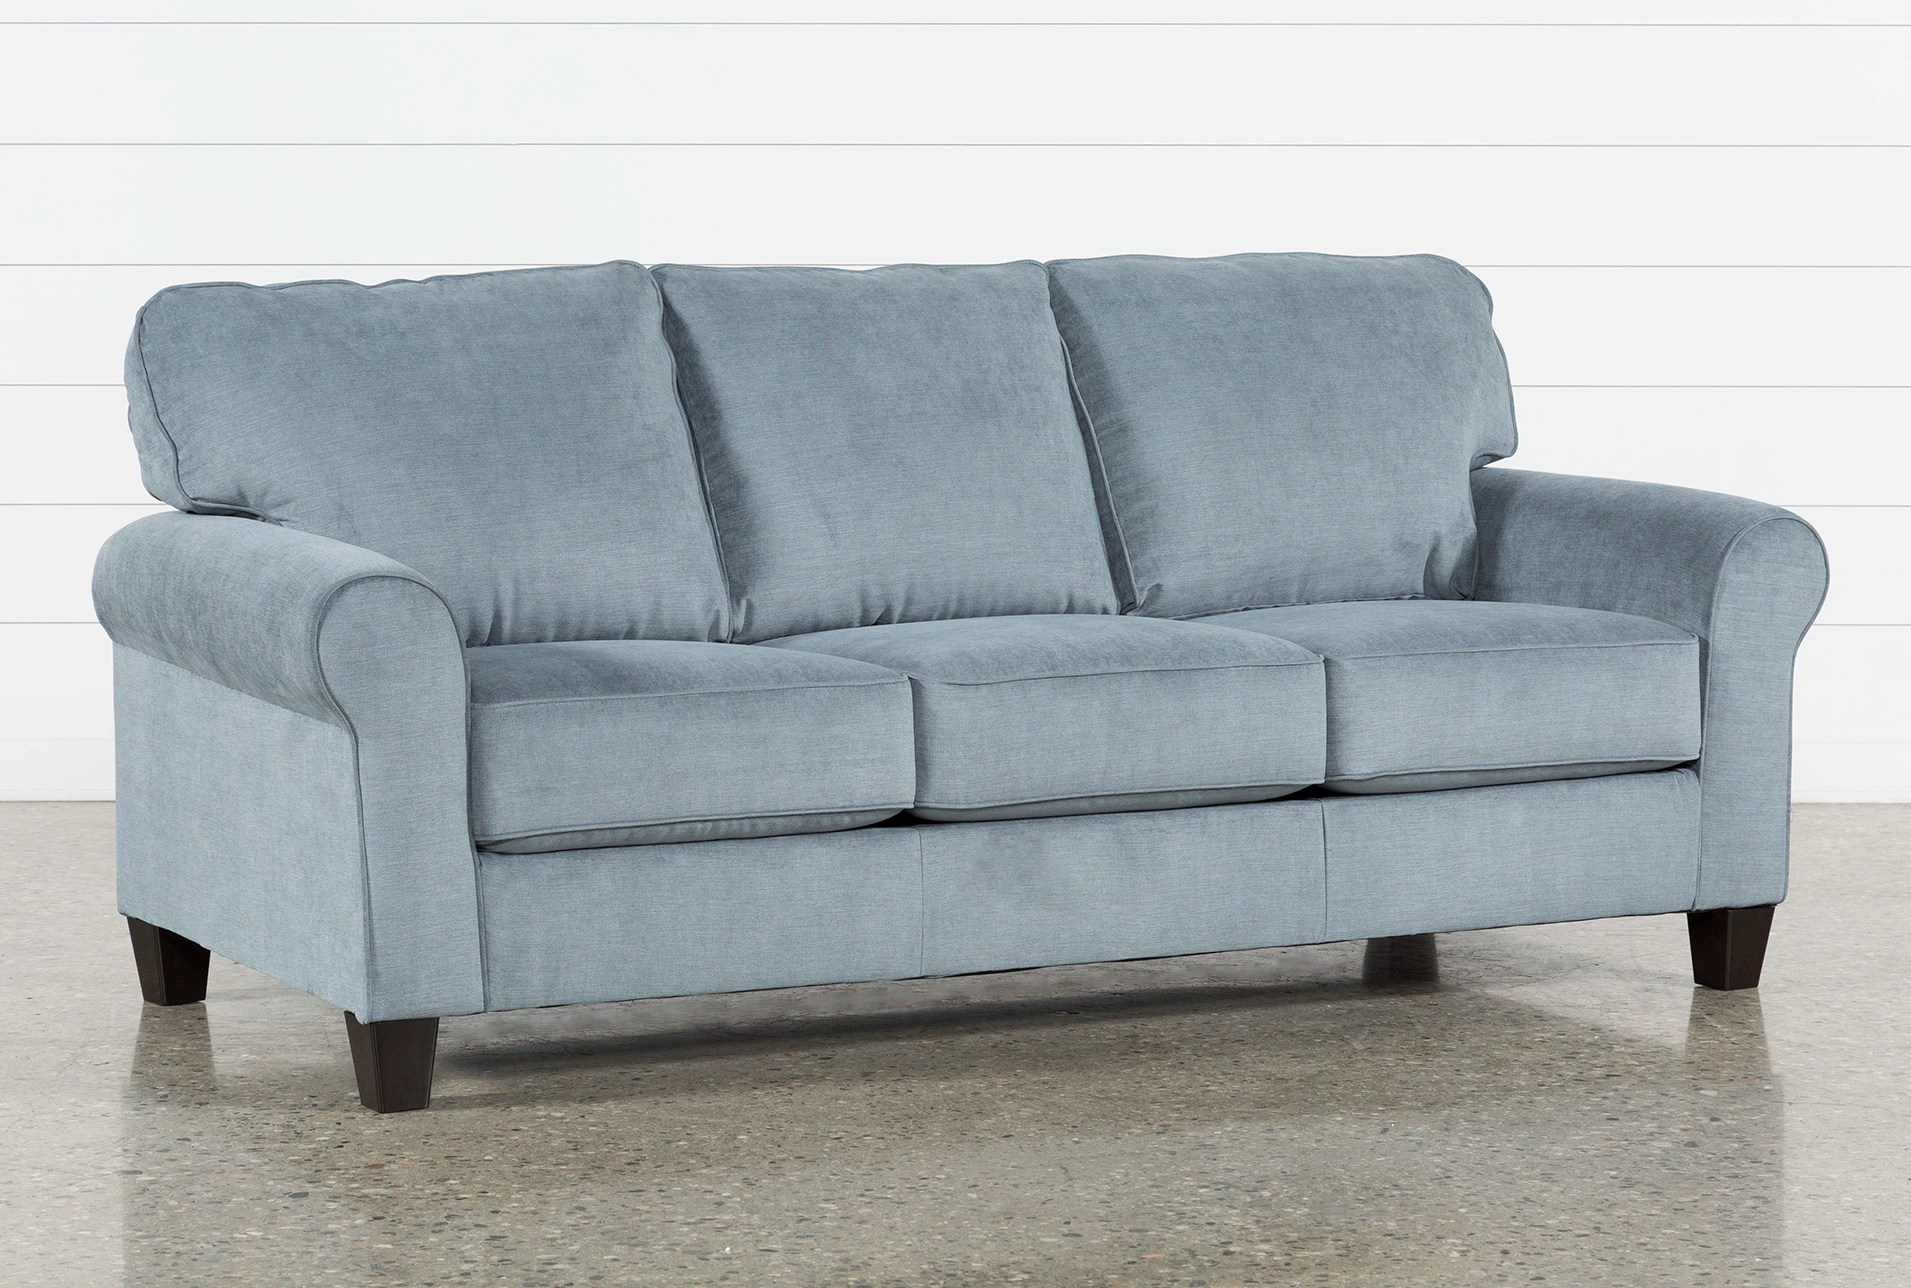 outlet sofas sleeper reviews fabric couches free assembly with delivery living neah sofa